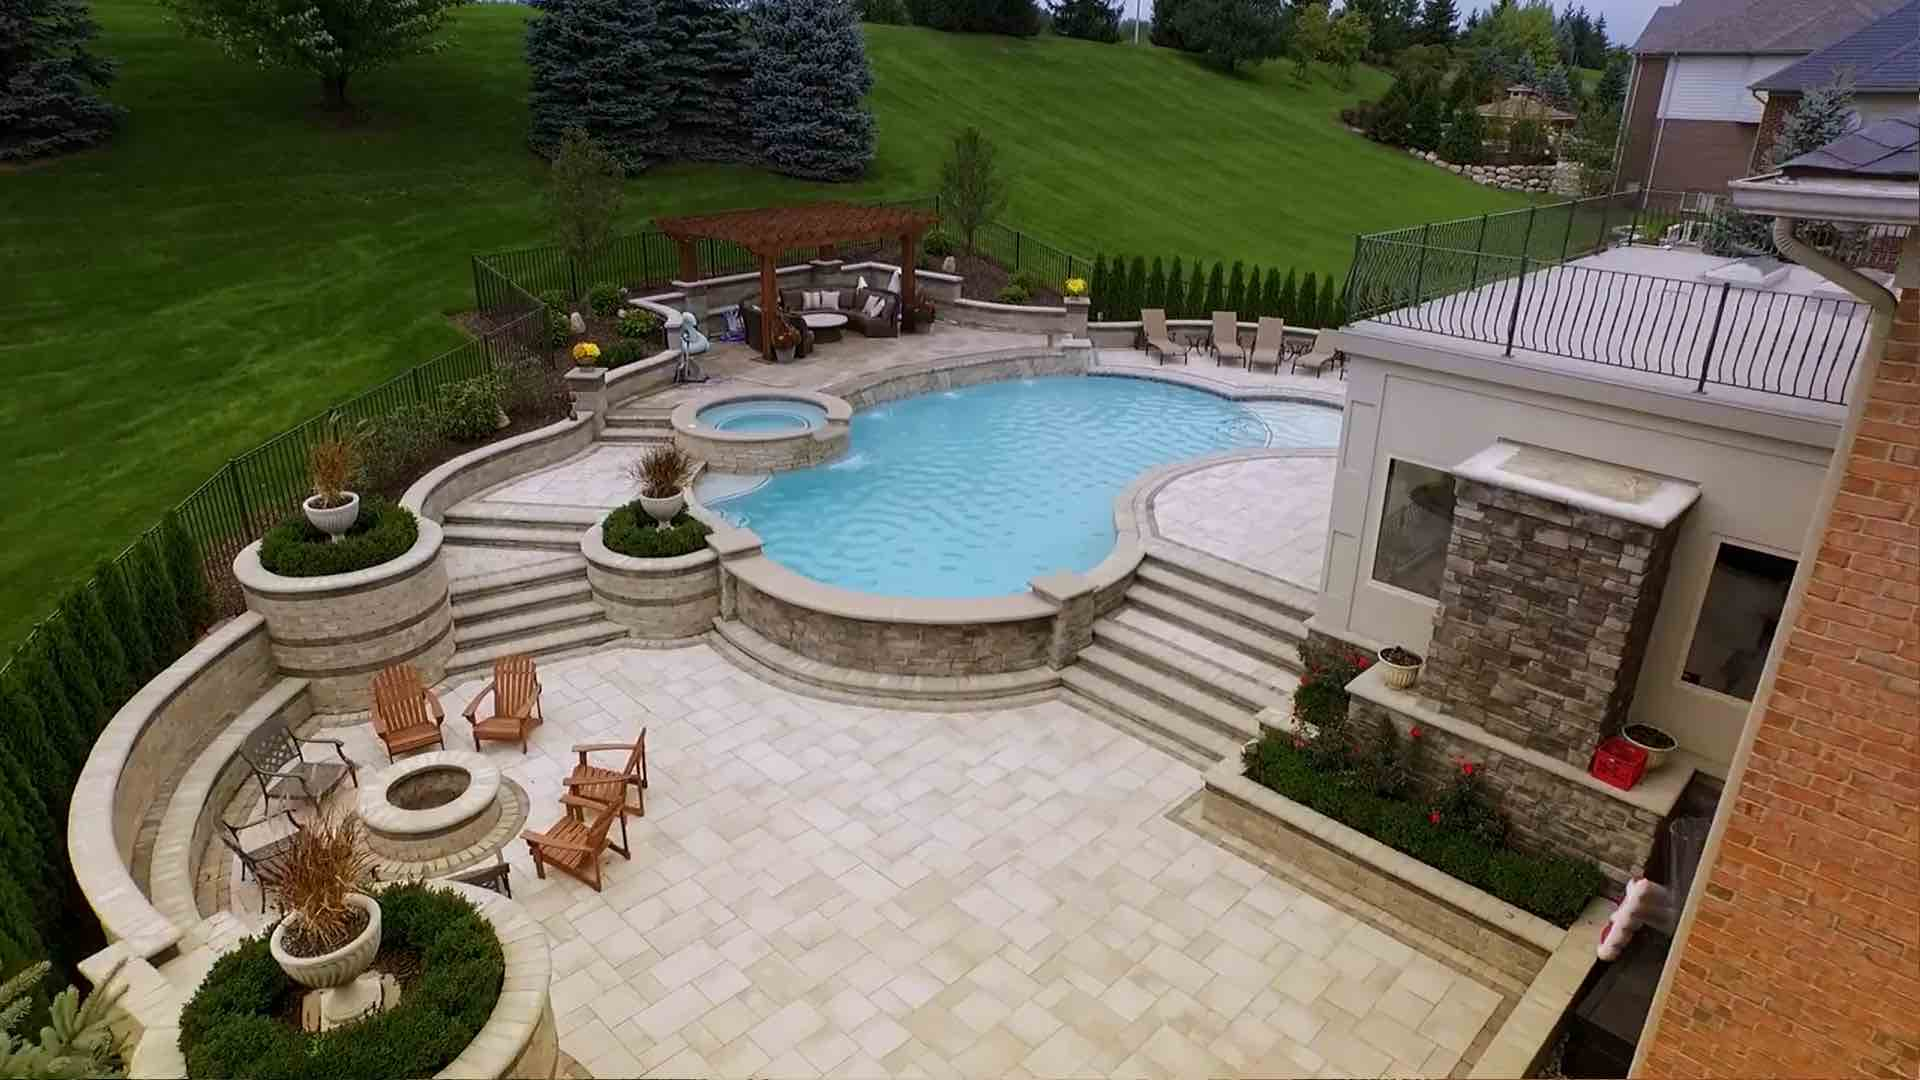 view of backyard patio, fire pit, seating, pool and spillover spa